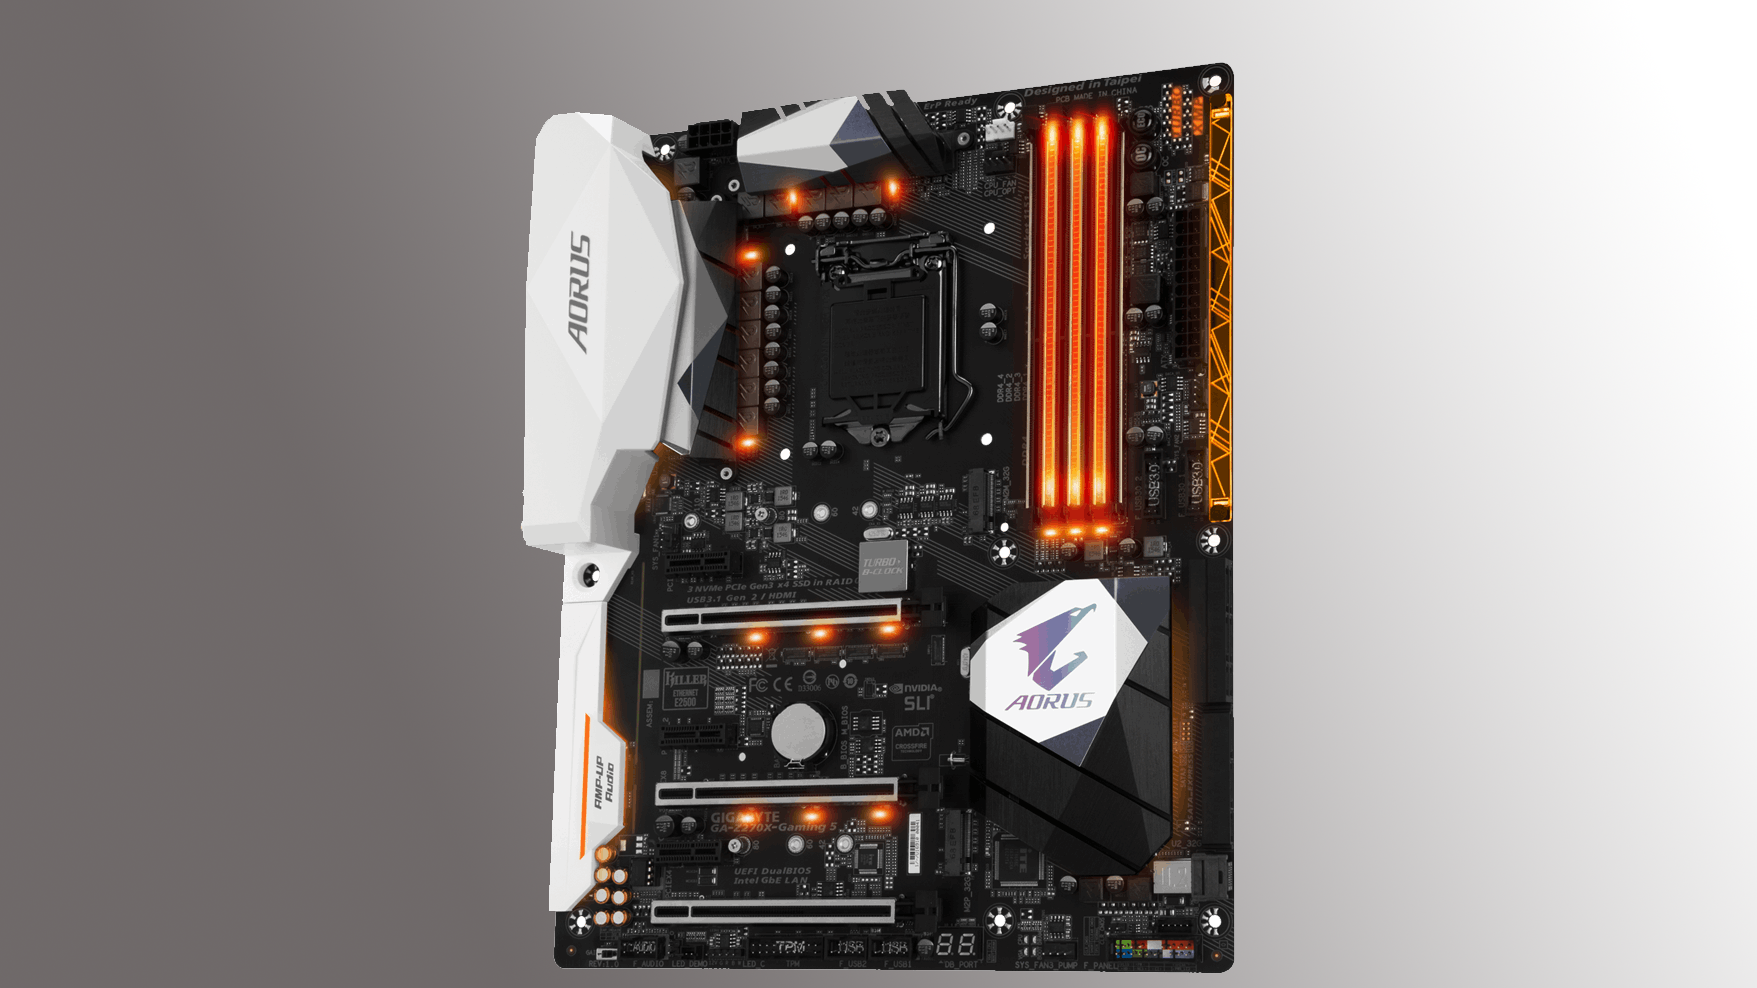 Gigabyte Aorus Ga Z270x Gaming 5 Review Trusted Reviews